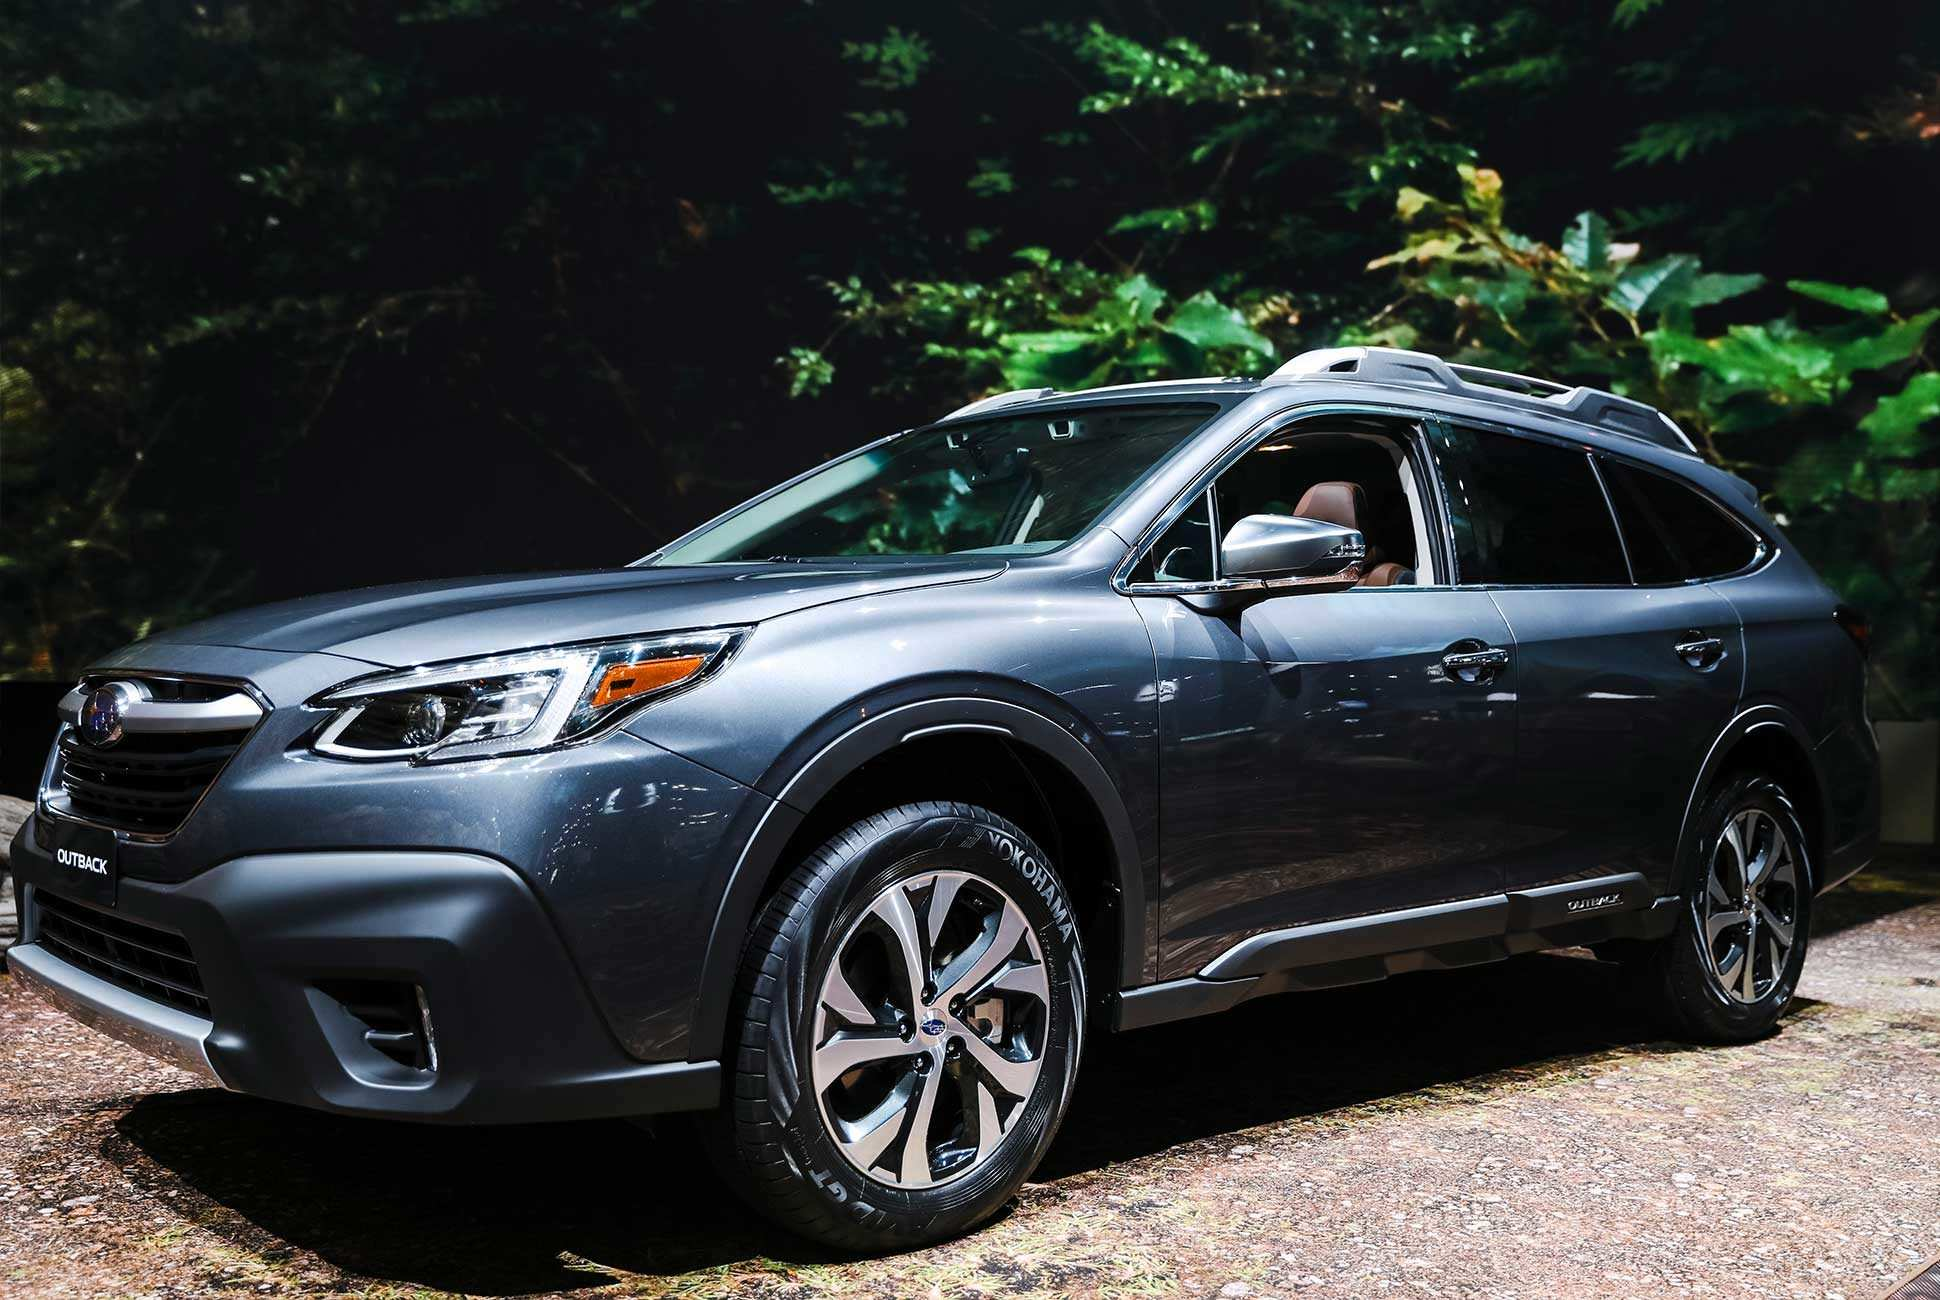 64 All New Subaru Outback Update 2020 Price And Review